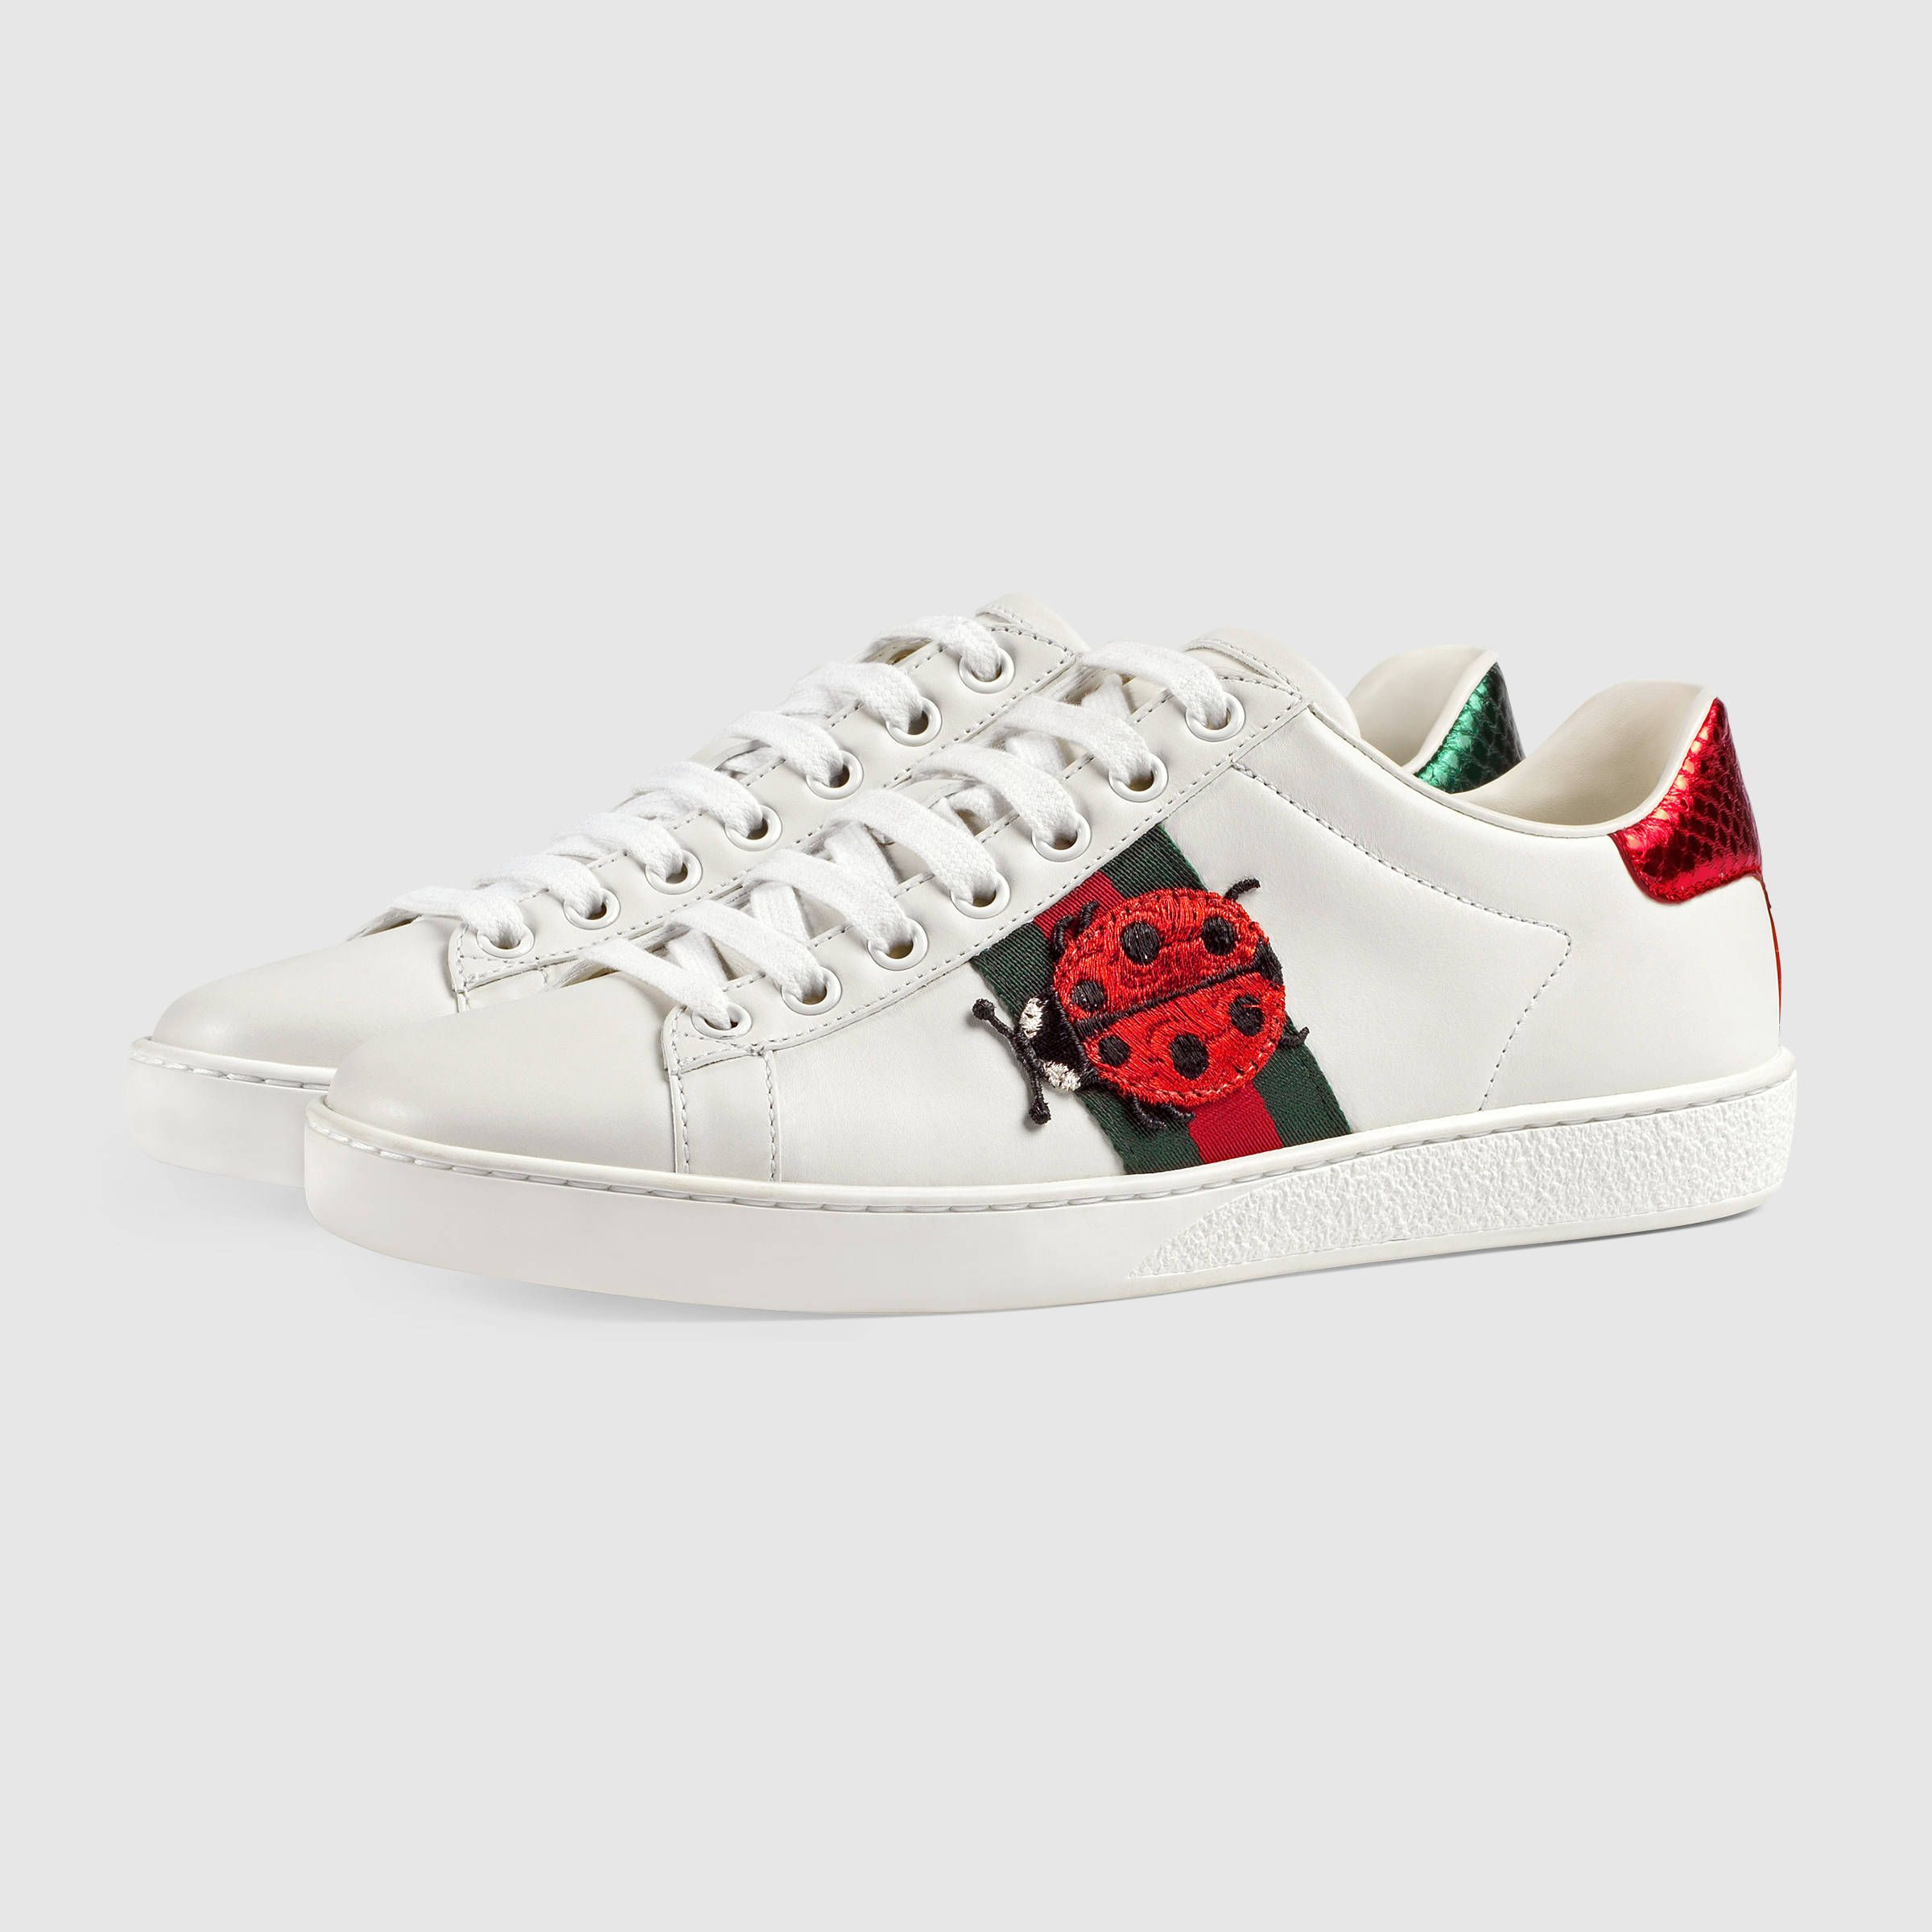 408358ece59 Gucci Women - Ace embroidered low-top sneaker - 431920A38G09064